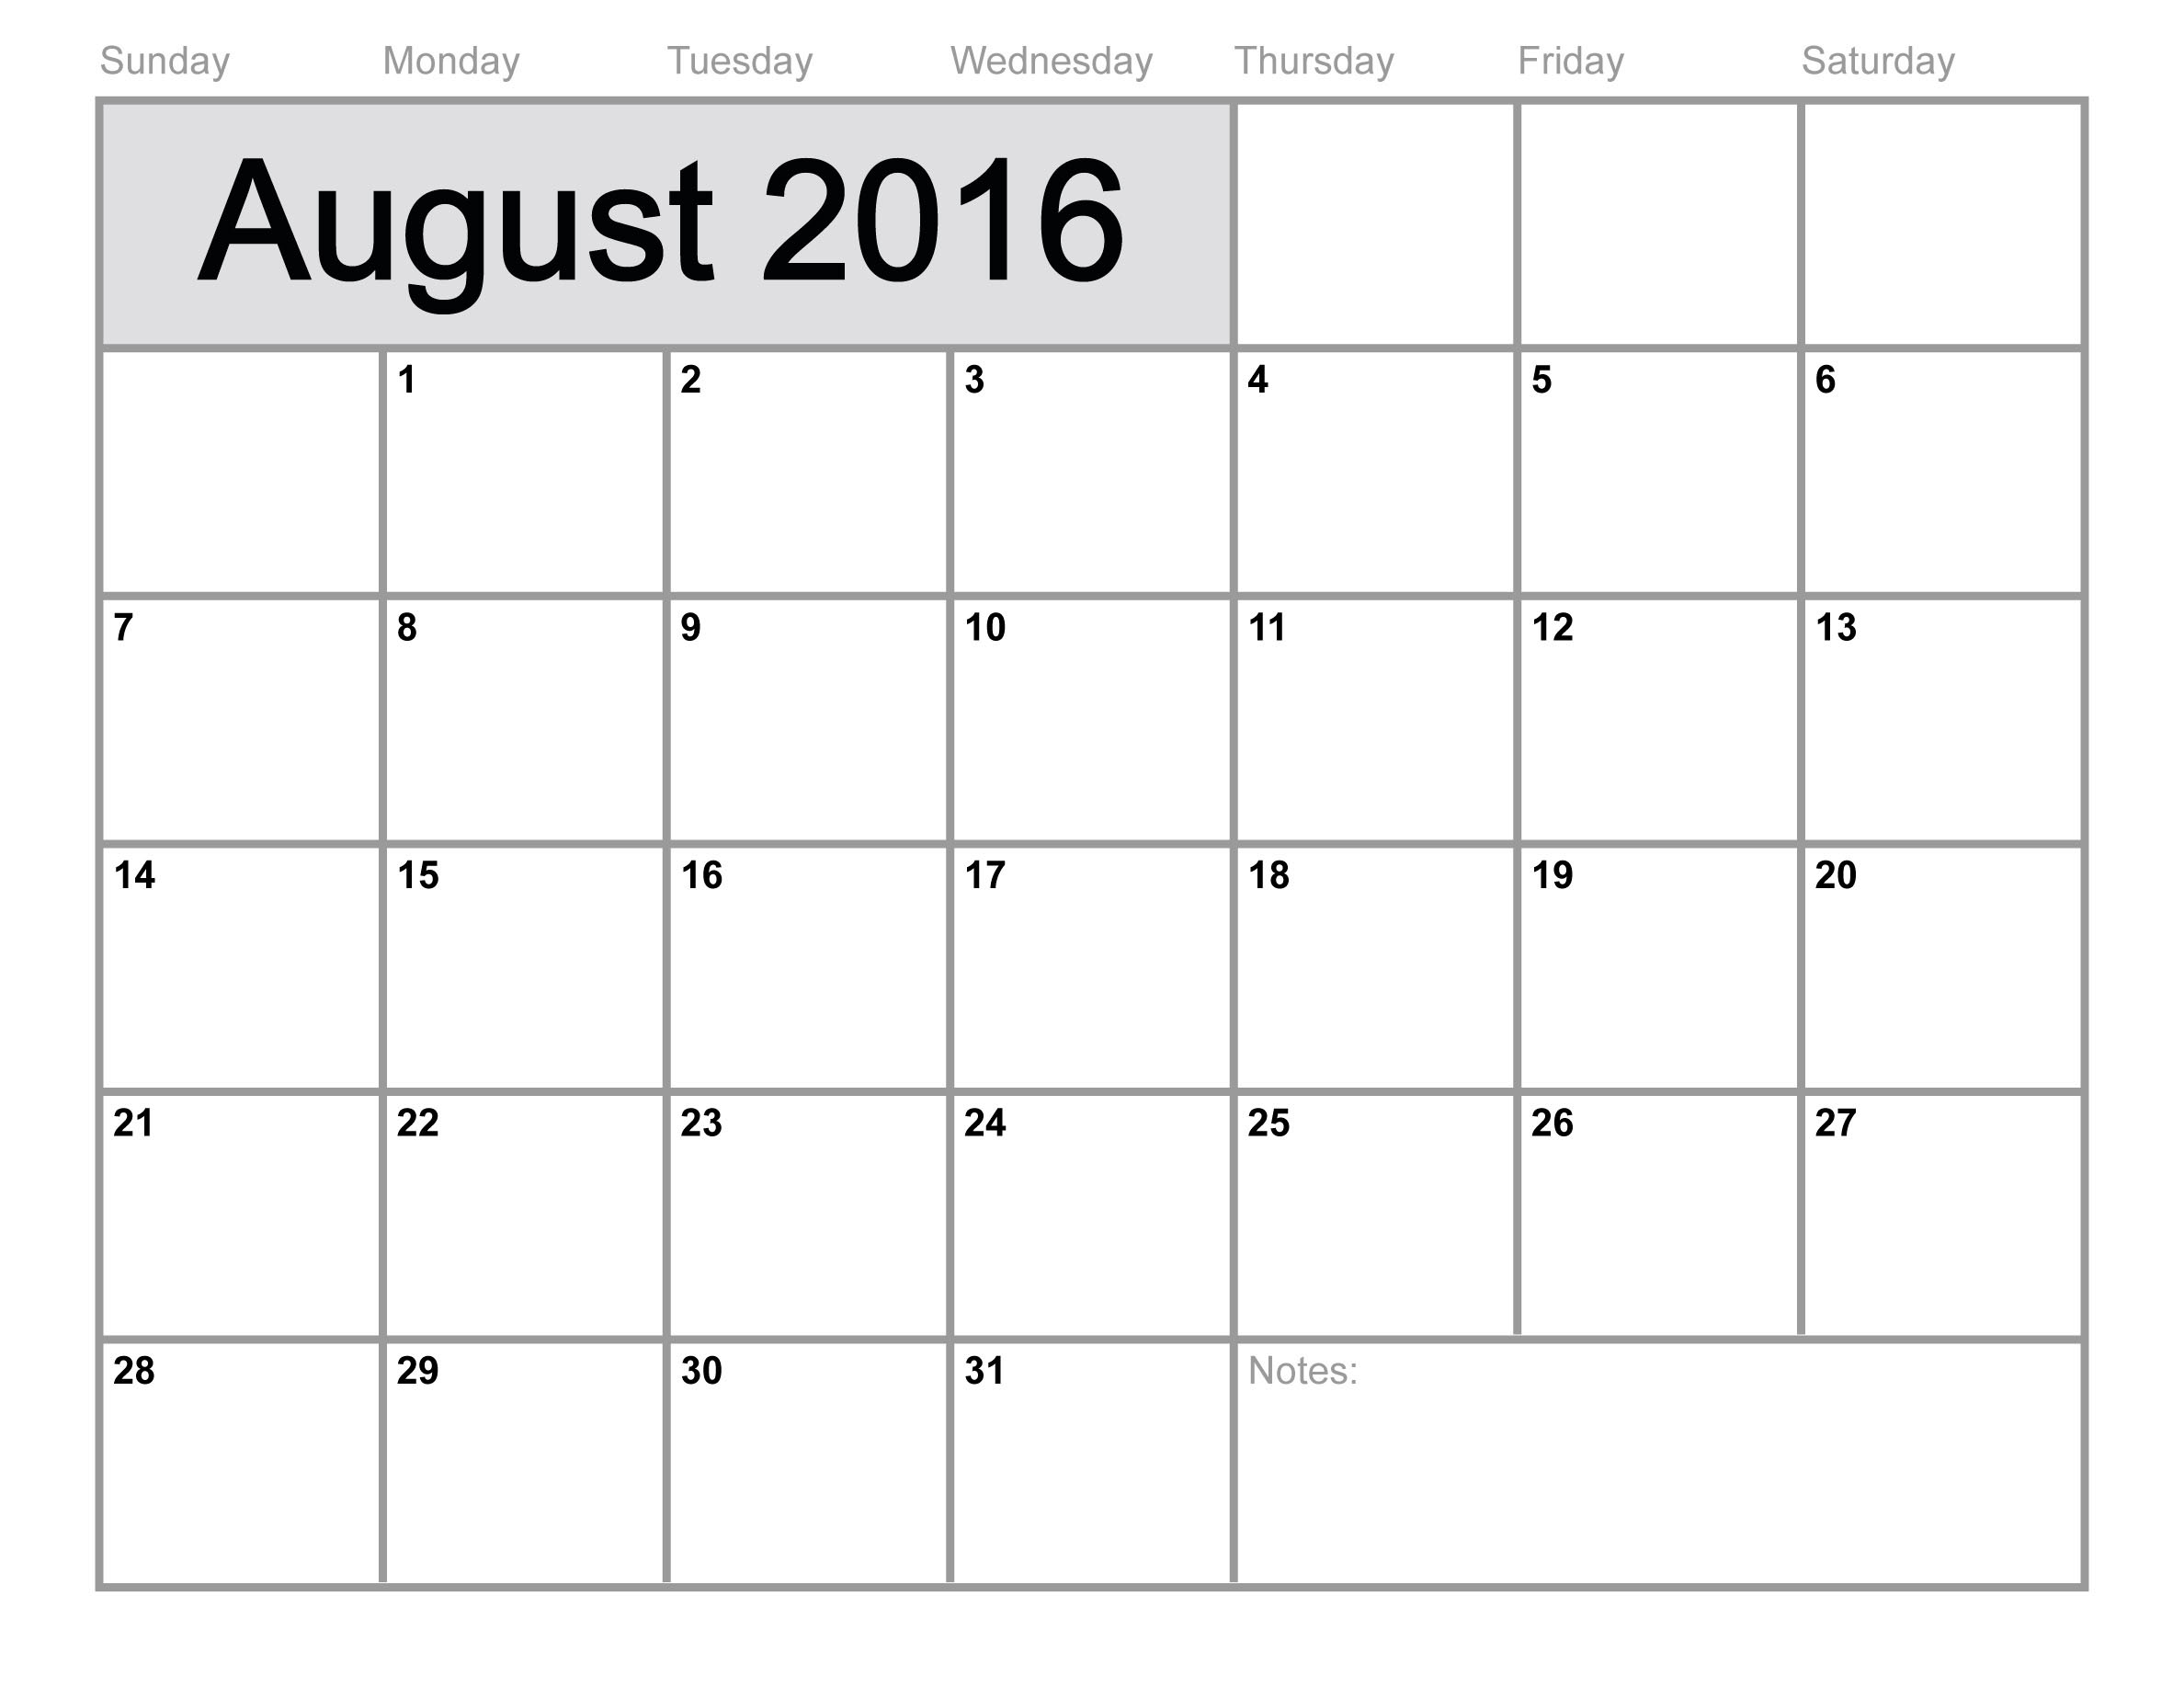 6 Images of 8 X 11 Printable Calendar August 2016